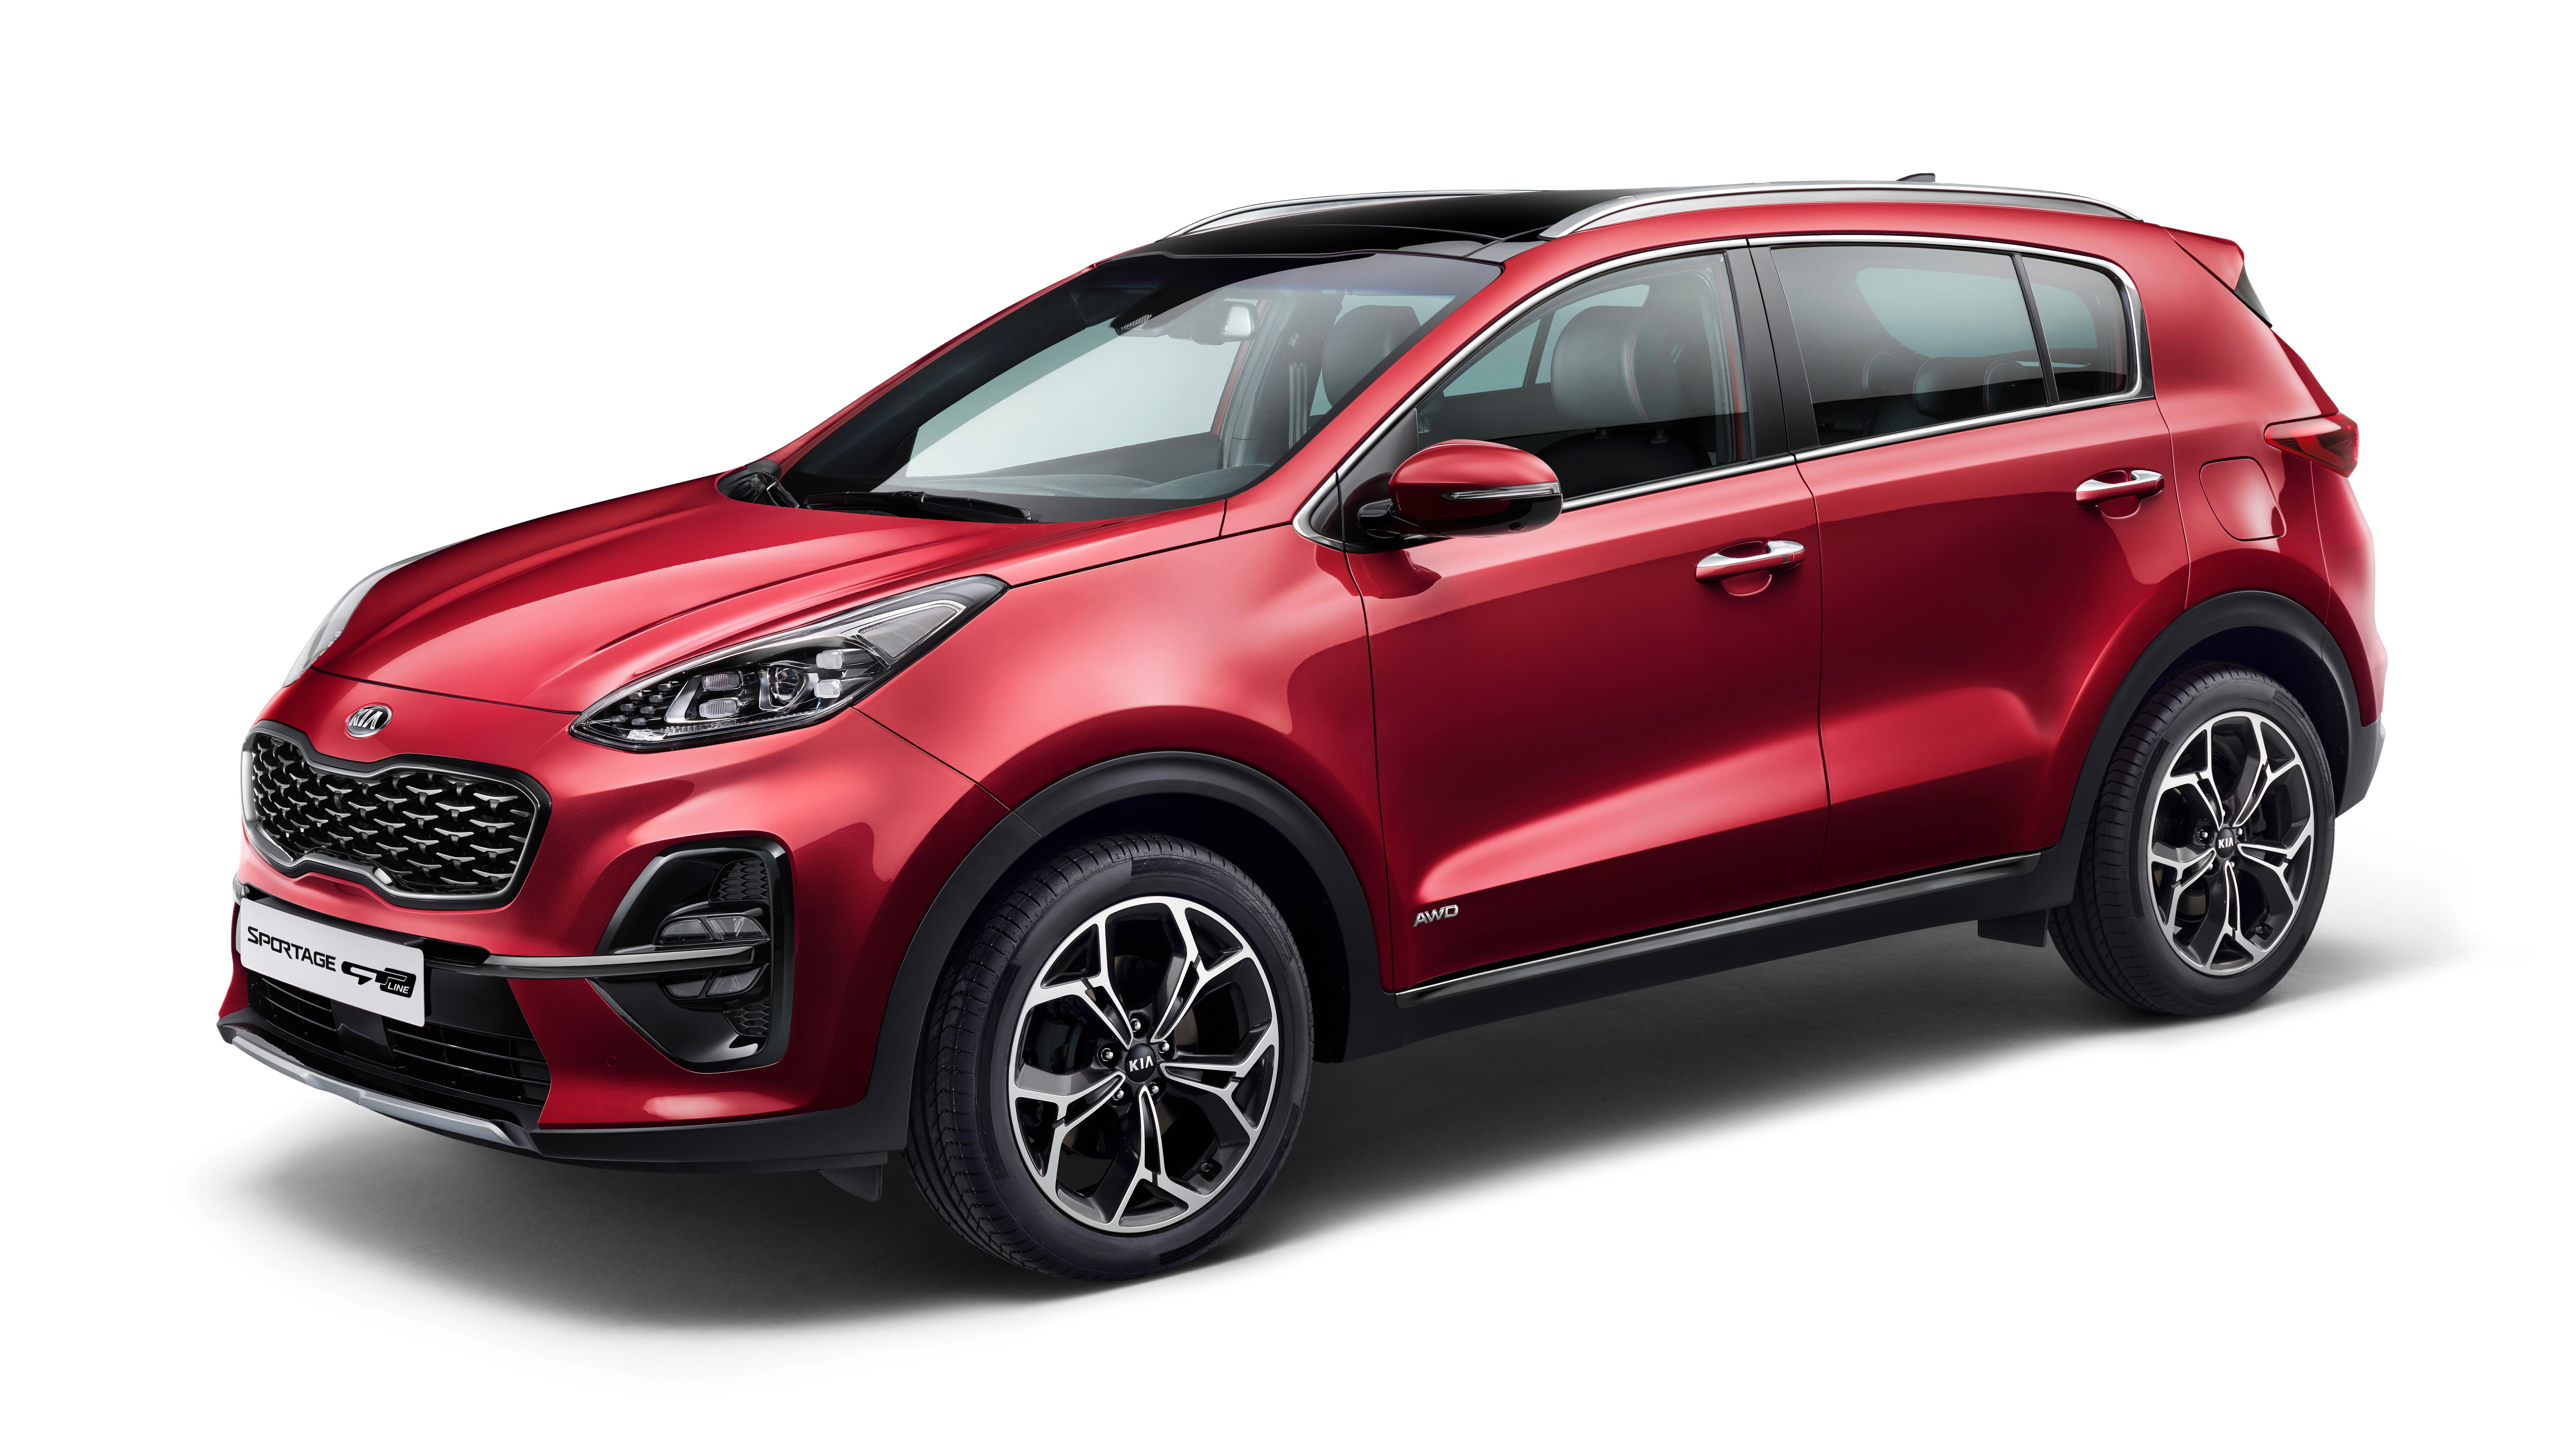 2019 Kia Sportage GT-Line red front 3/4